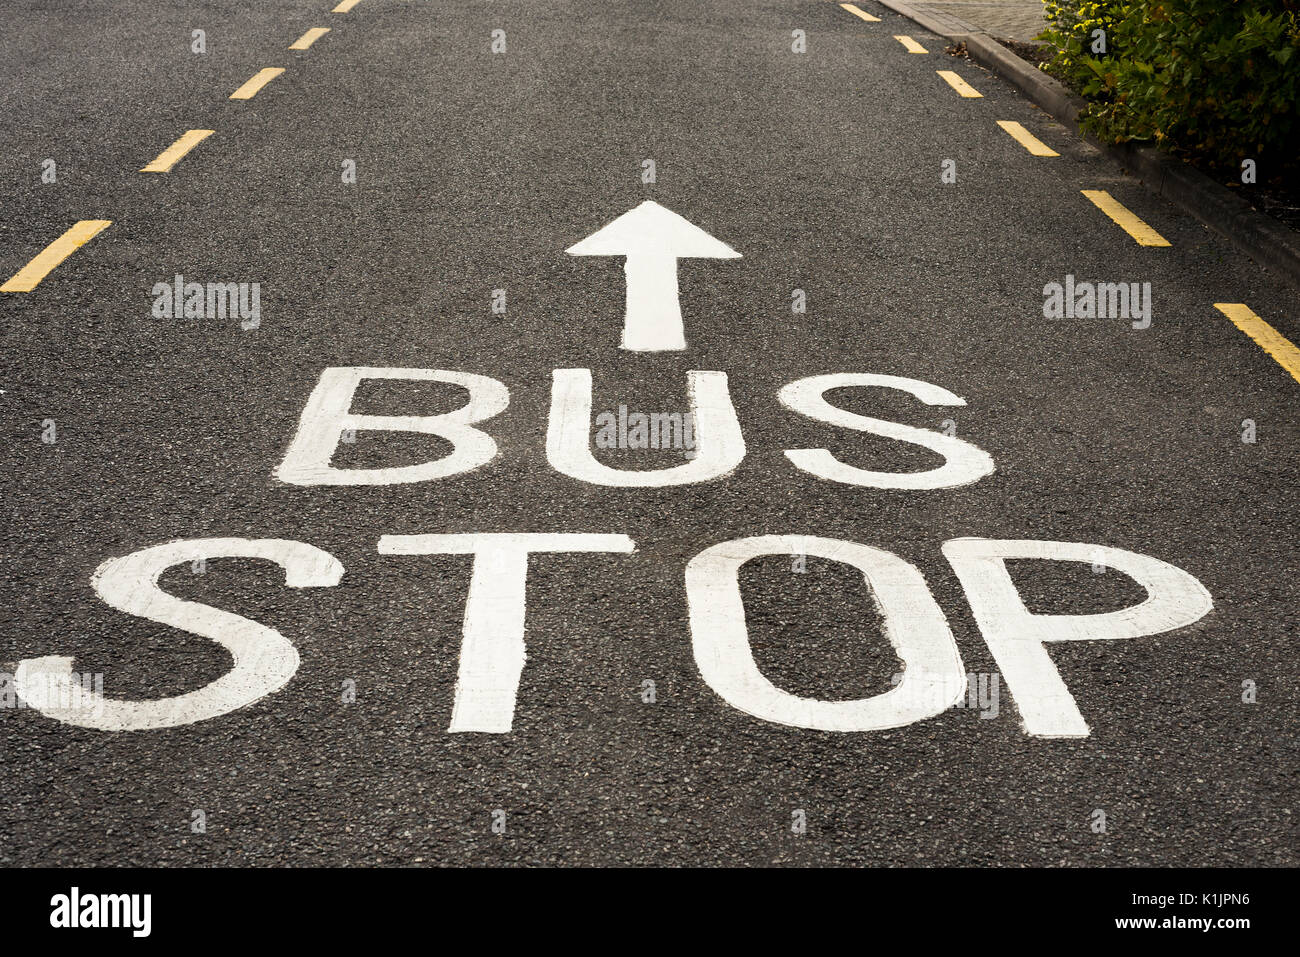 Bus Stop Sign and ahead Arrow painted in white on an asphalt road with yellow markings. - Stock Image